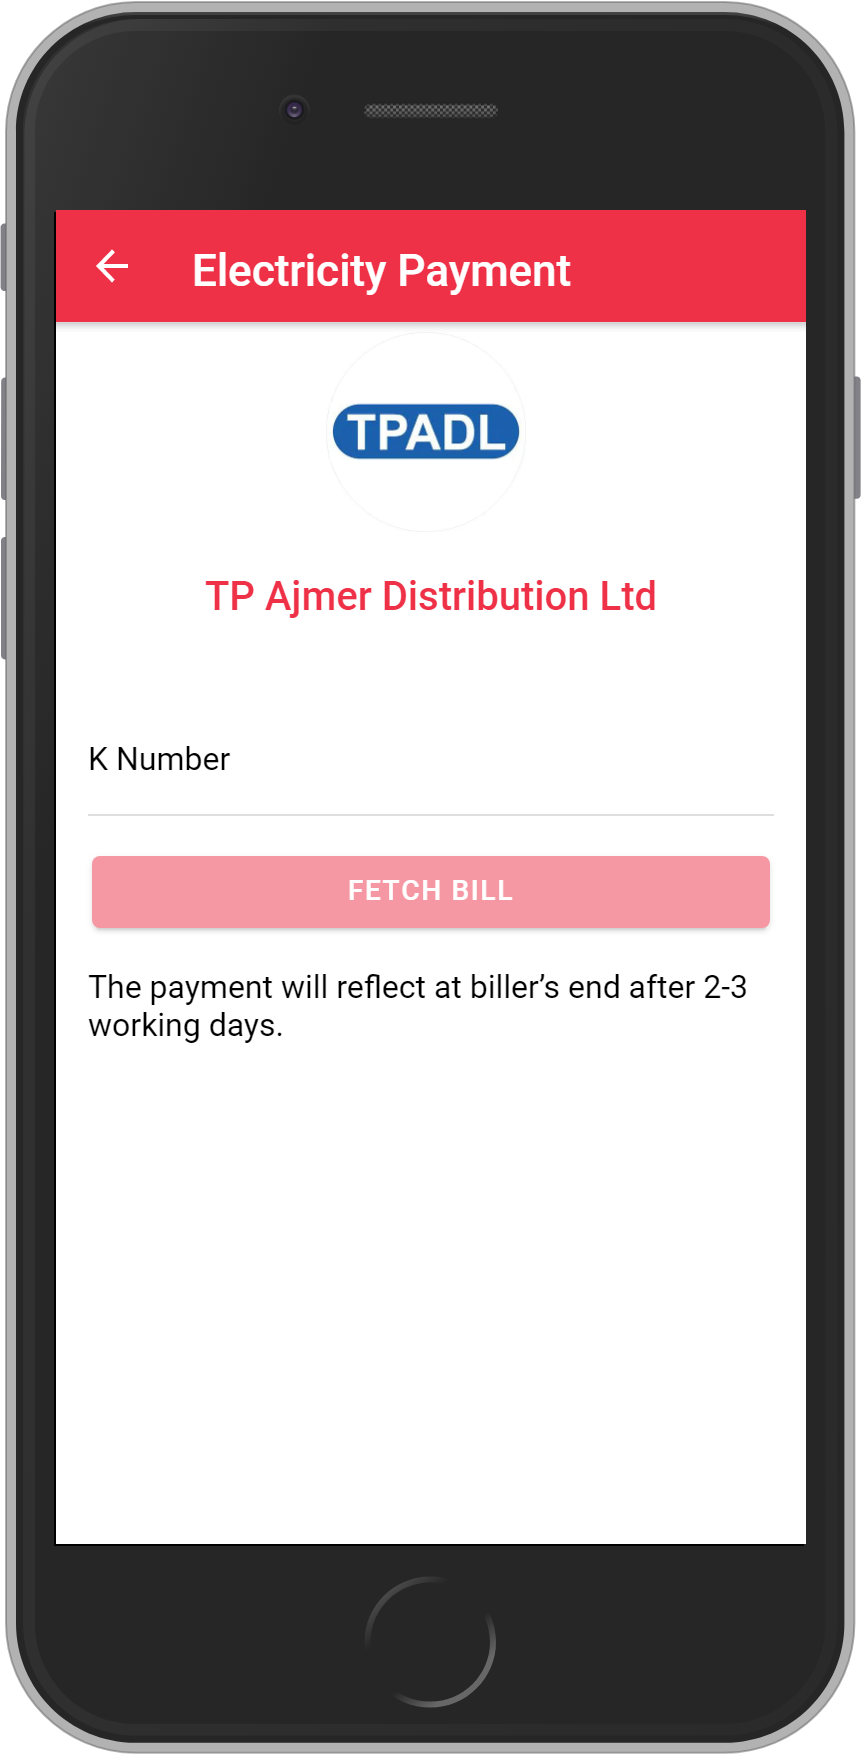 Get UNLIMITED <b>0.1%</b> CASHBACK on TP Ajmer Distribution Ltd. Bill Payment.